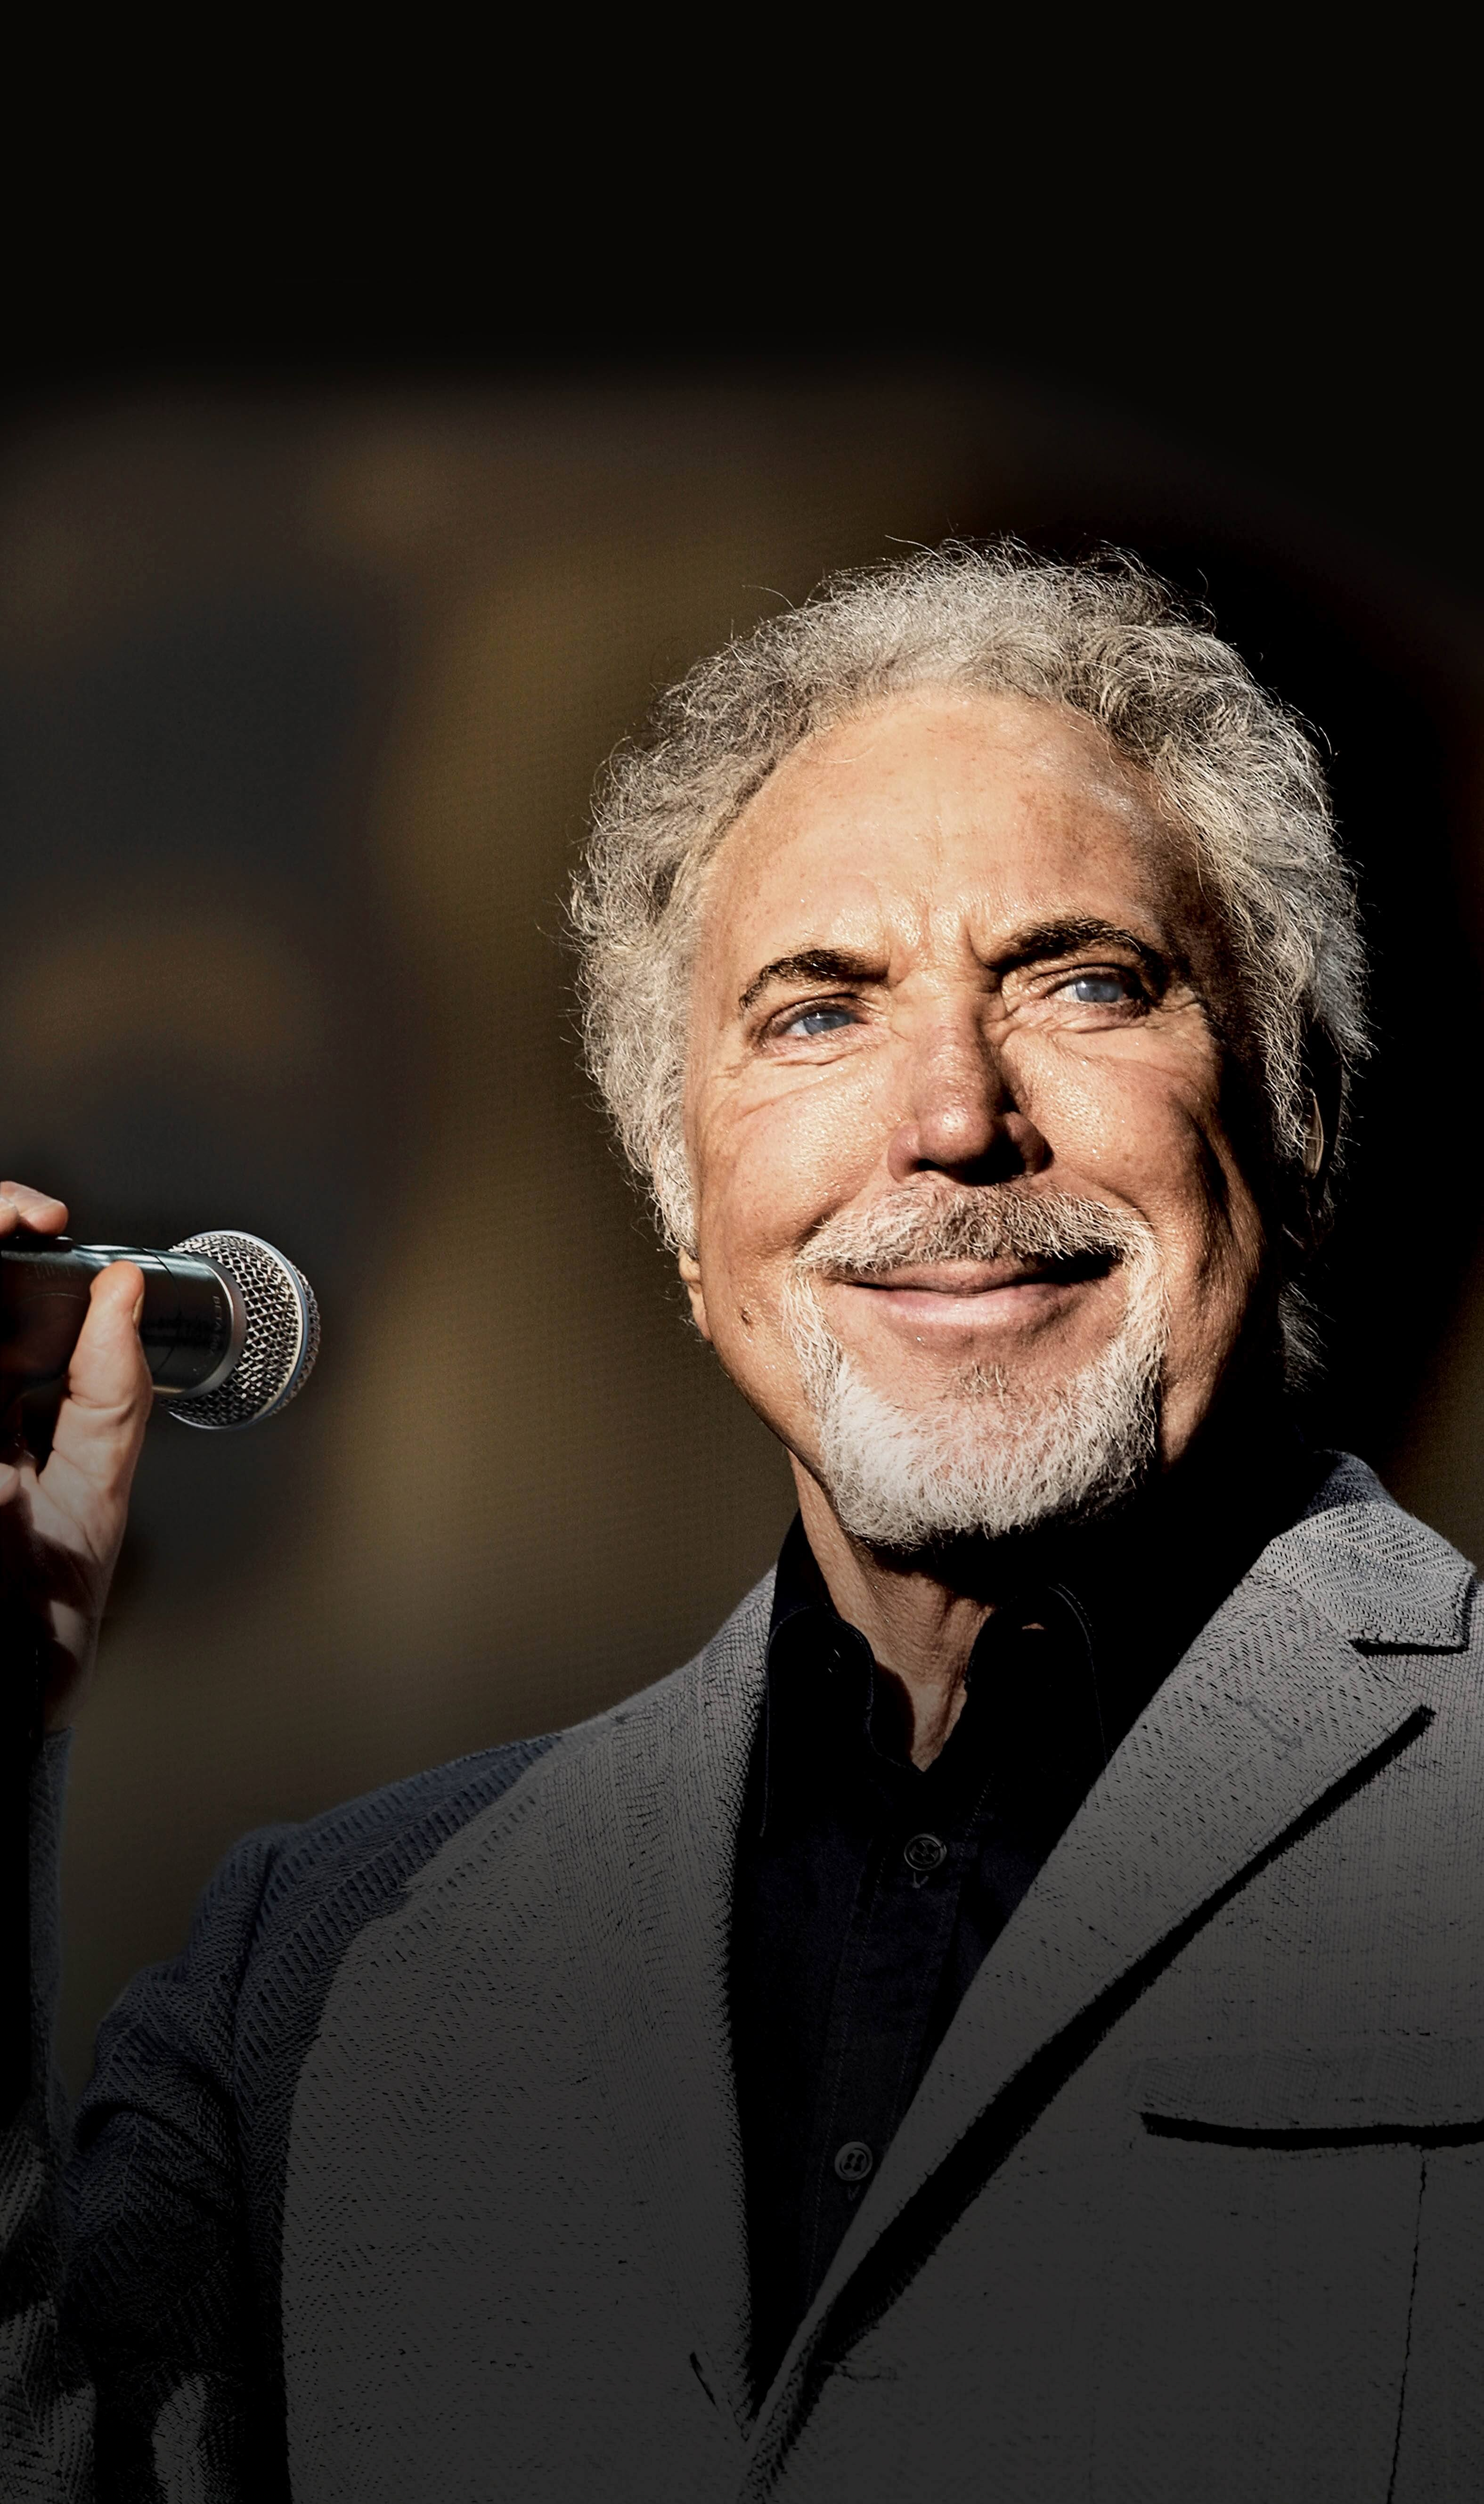 Tom Jones Performs at the Big Dome on April 2 - MNL Online